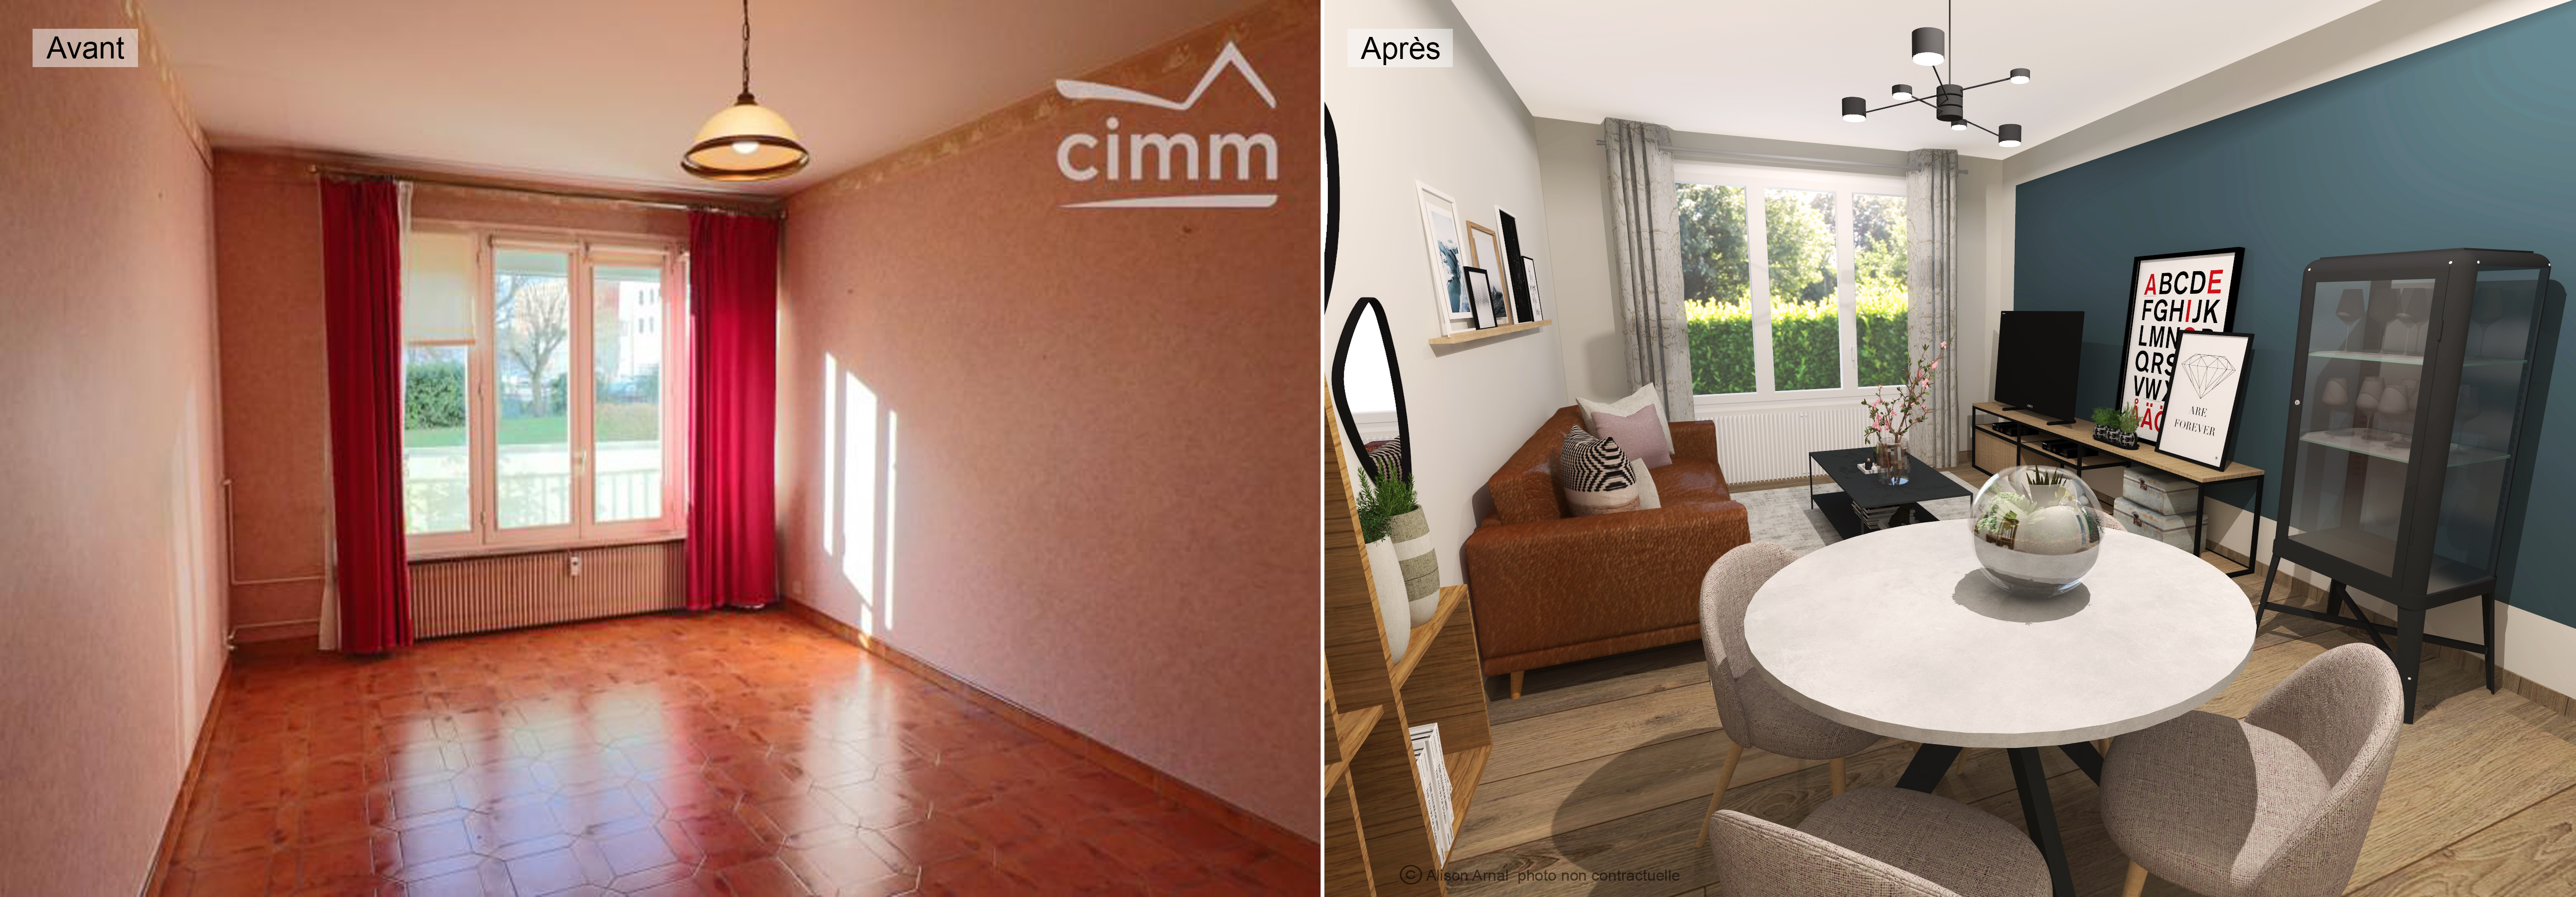 Home Staging Photos Avant Après home staging | cimm immobilier chenove